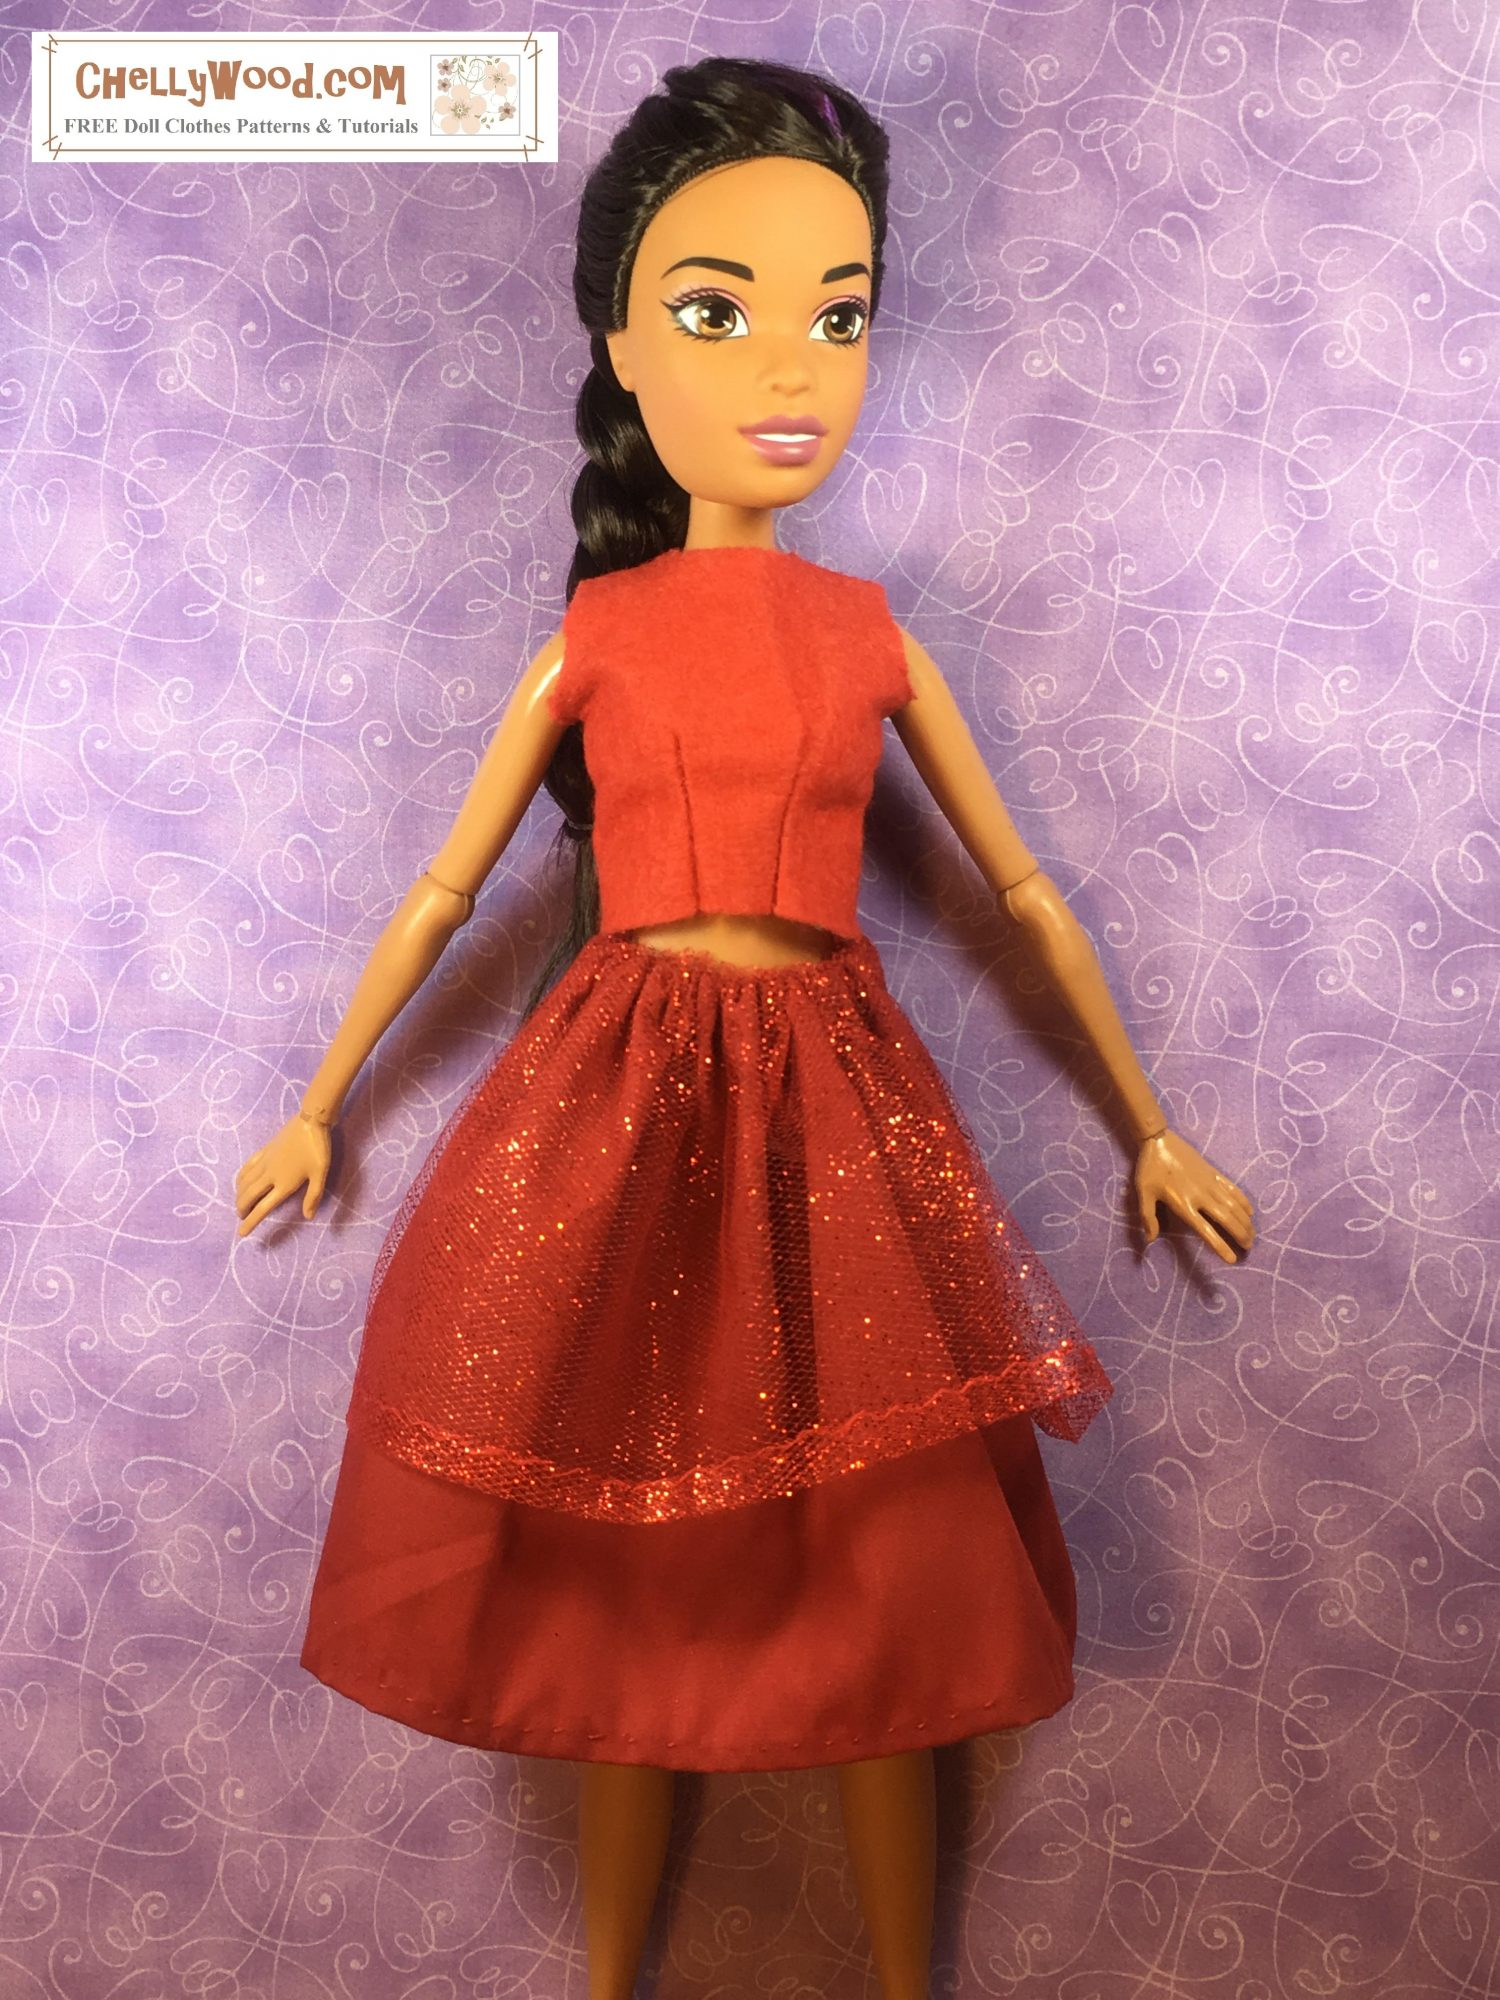 Against a purple background, the 17 inch Barbie known as Endless Hair Kingdom (Dreamtopia) Barbie models a sleeveless felt crop top and a glittery holiday skirt, all in red.